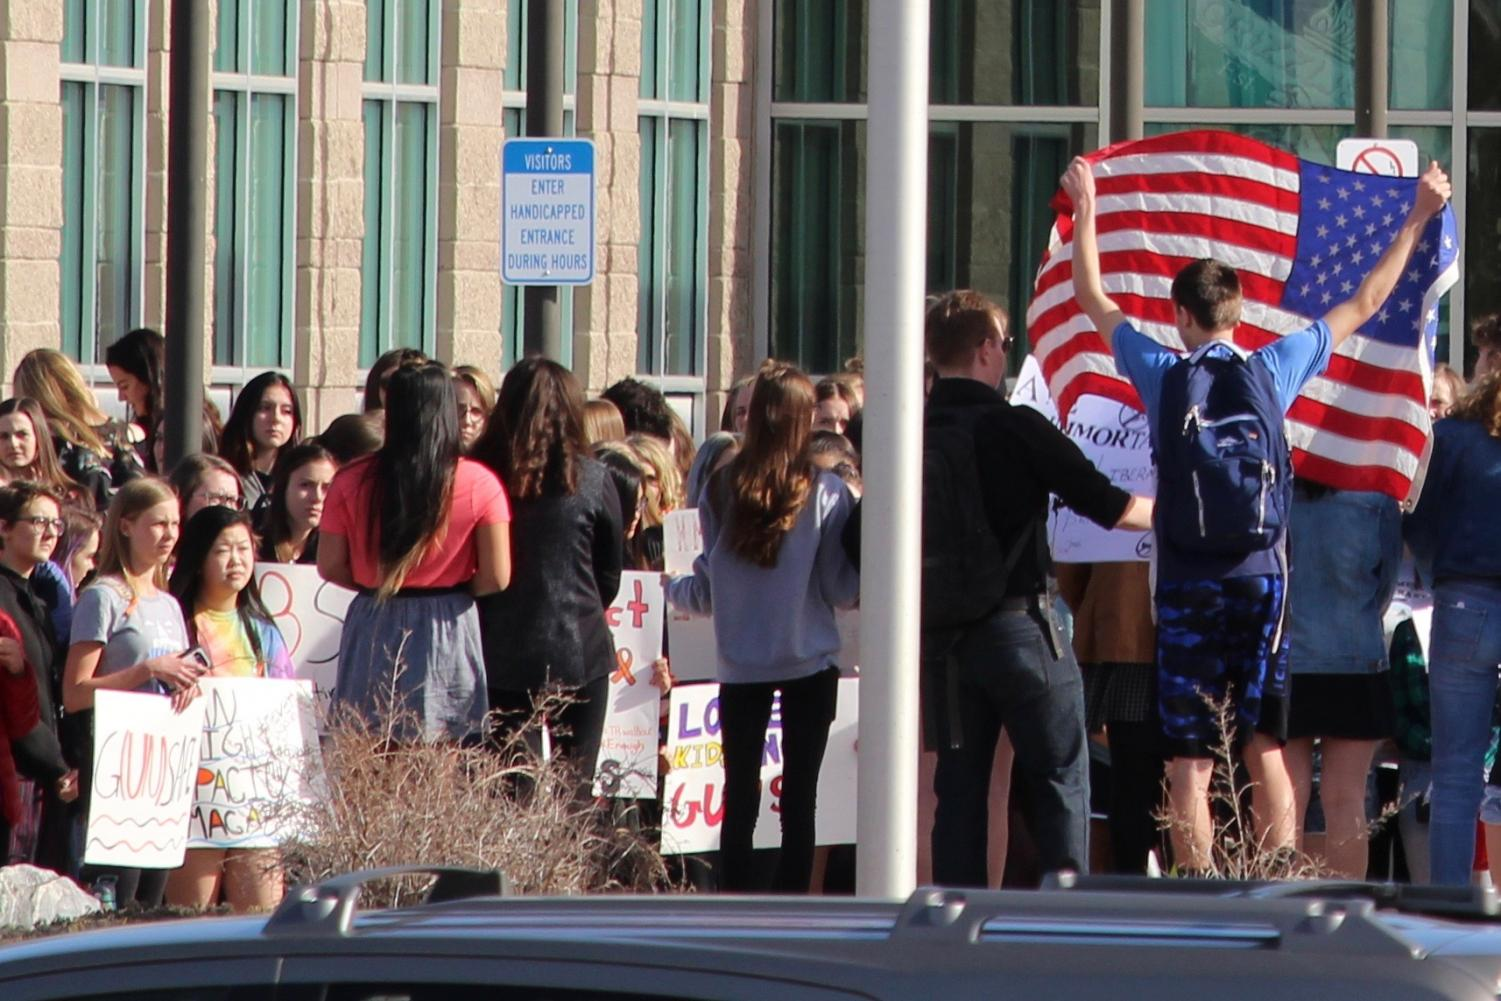 ThunderRidge students assemble in front of their high school on Wednesday, March 14, 2018, in Highlands Ranch, Colo. to express their concerns in the wake of the Parkland, Fla. shooting.